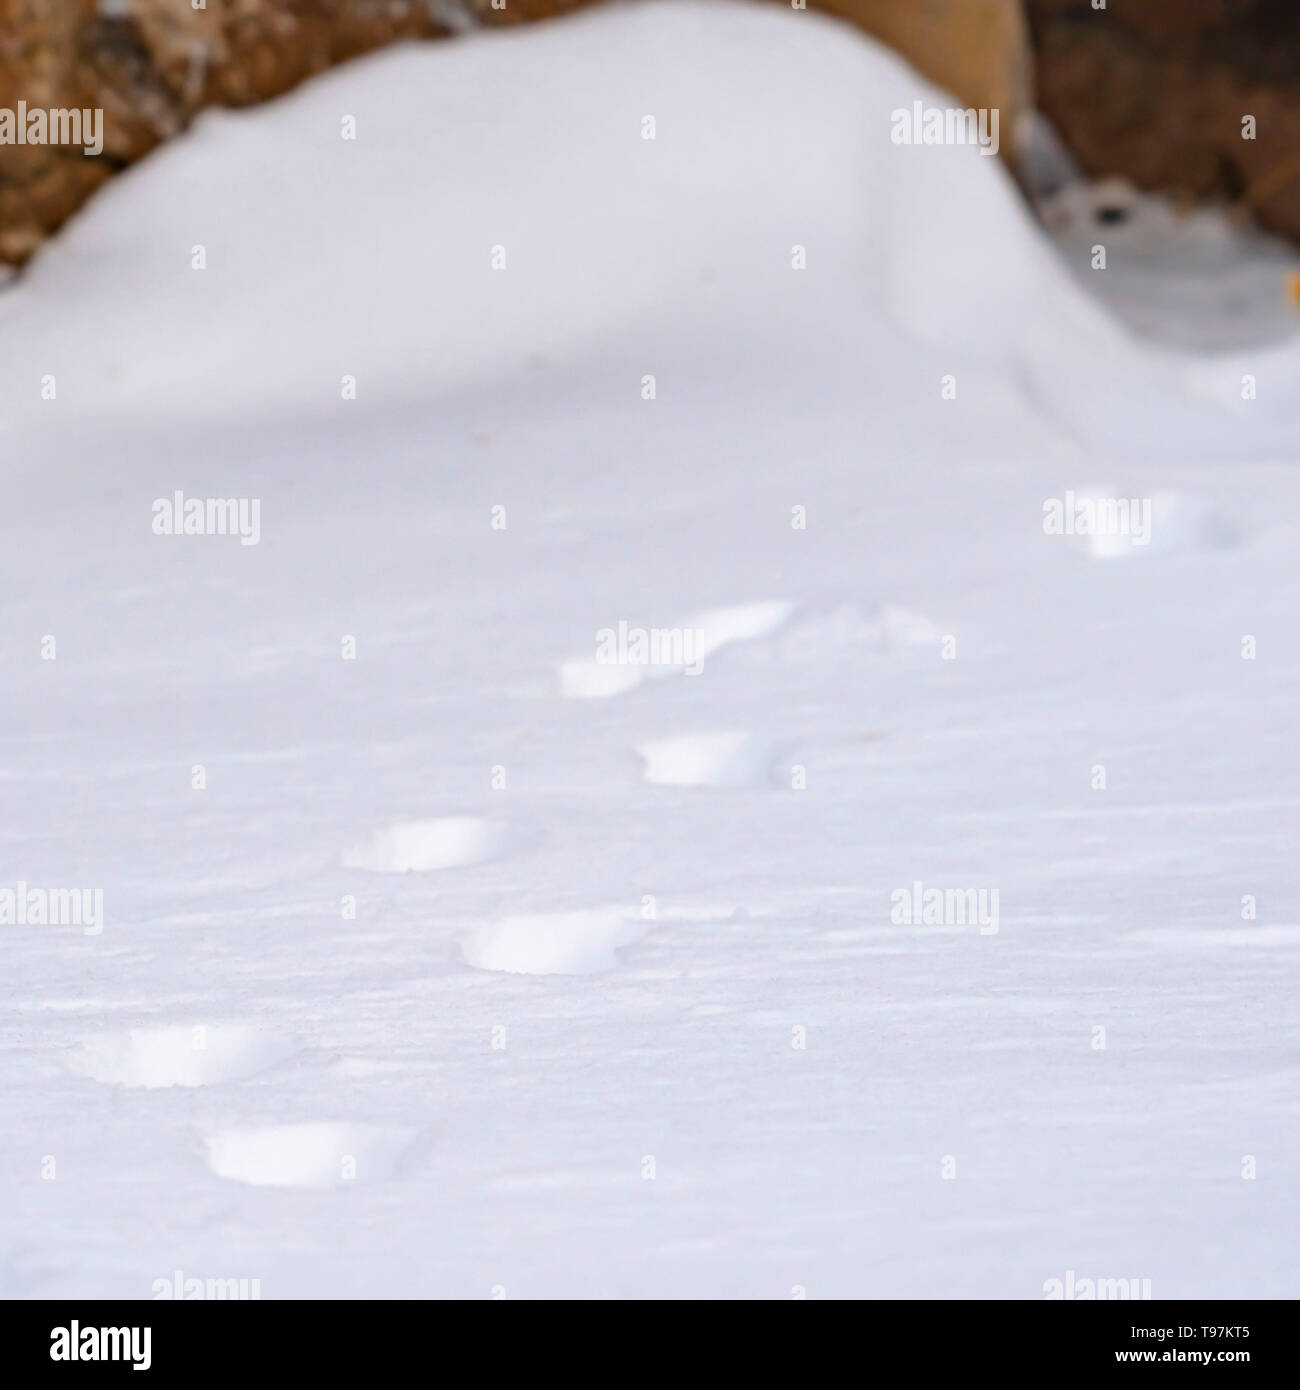 Clear Square Nature scenery with a close up of animal tracks on powdery snow in winter - Stock Image